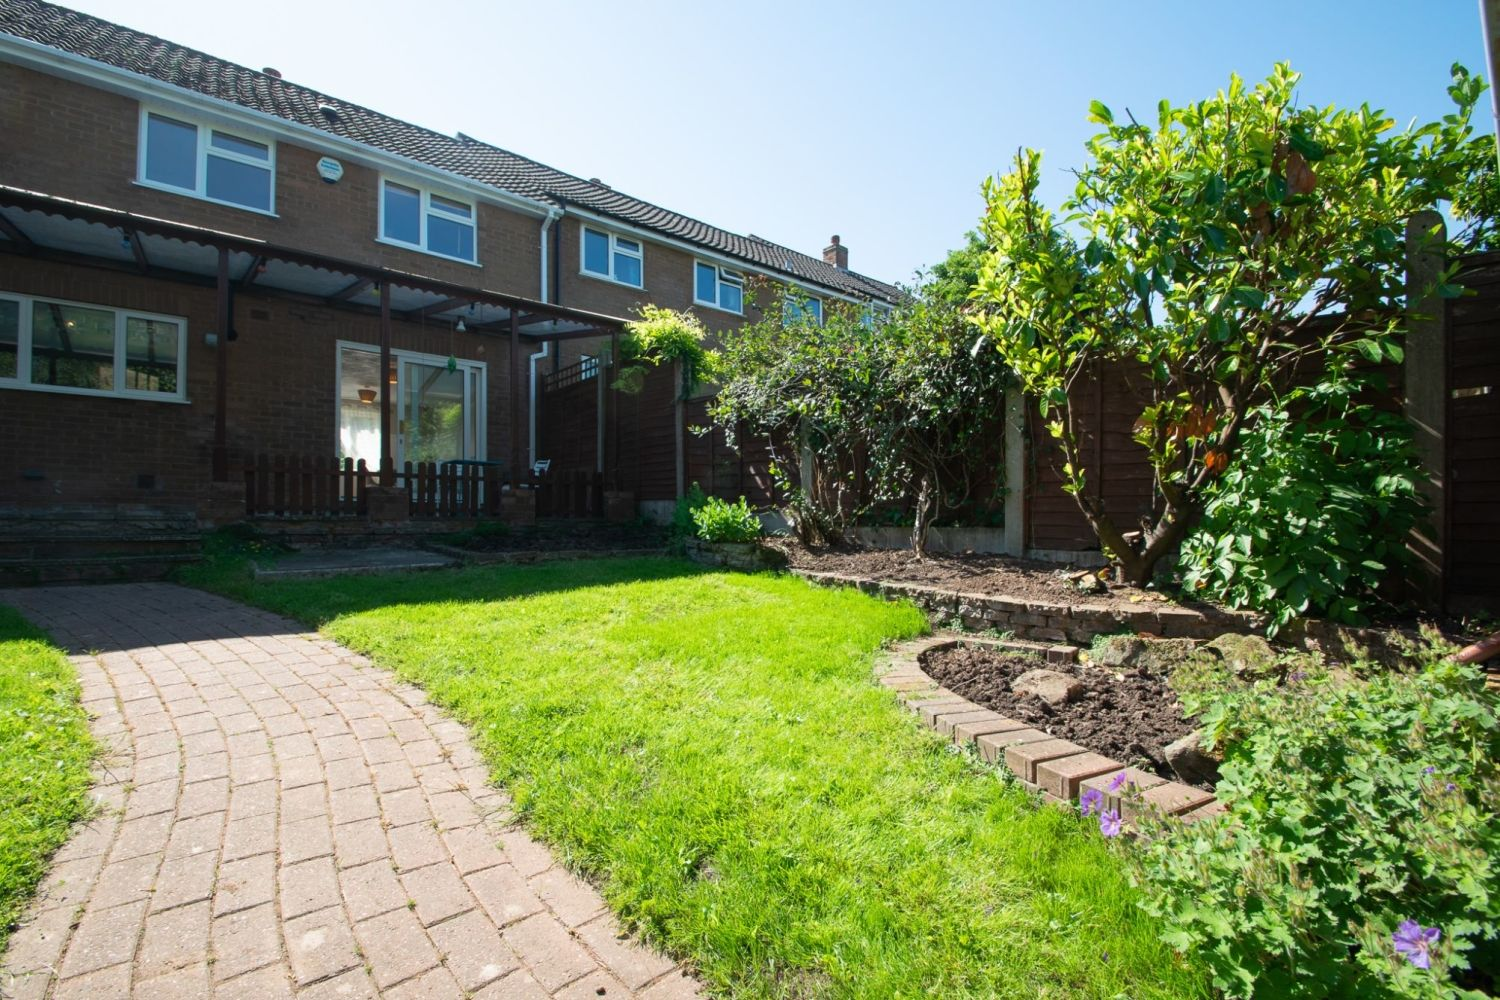 3 bed terraced for sale in Waverley Crescent, Romsley  - Property Image 19